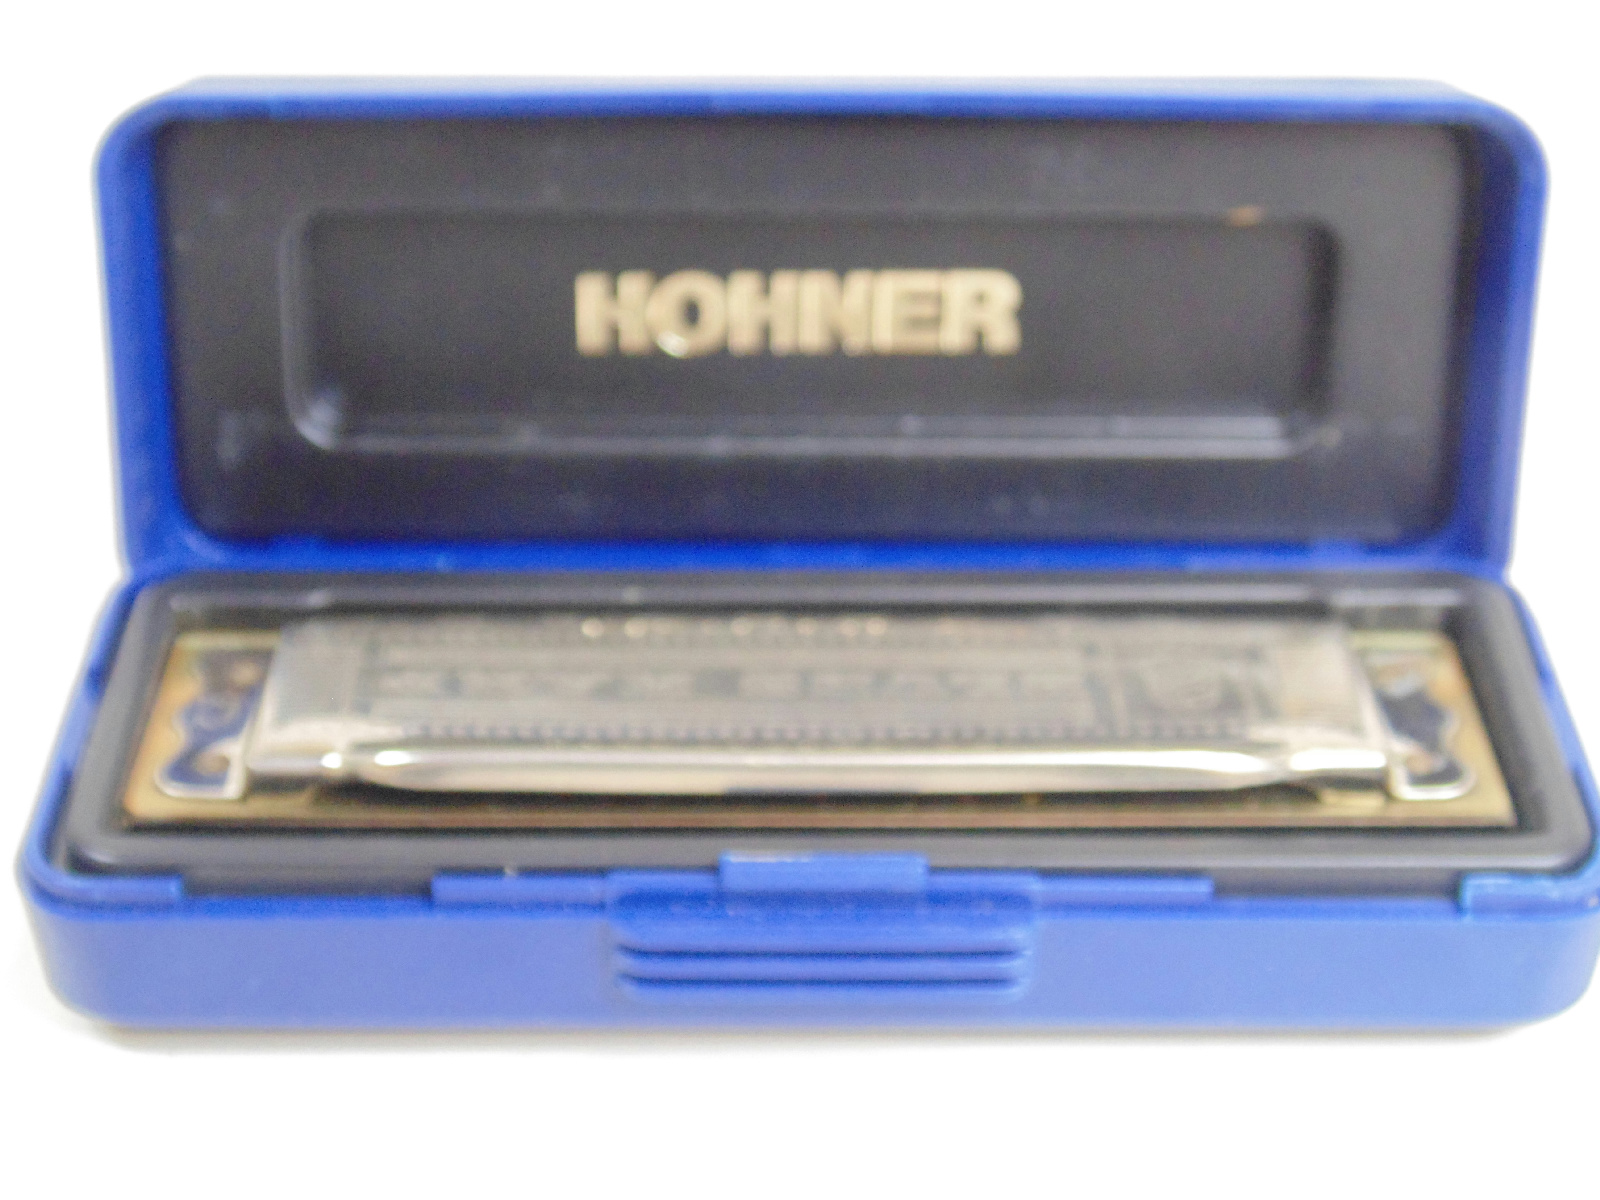 M Hohner Blues Harp Harmonica Made in Germany Key of C : eBay